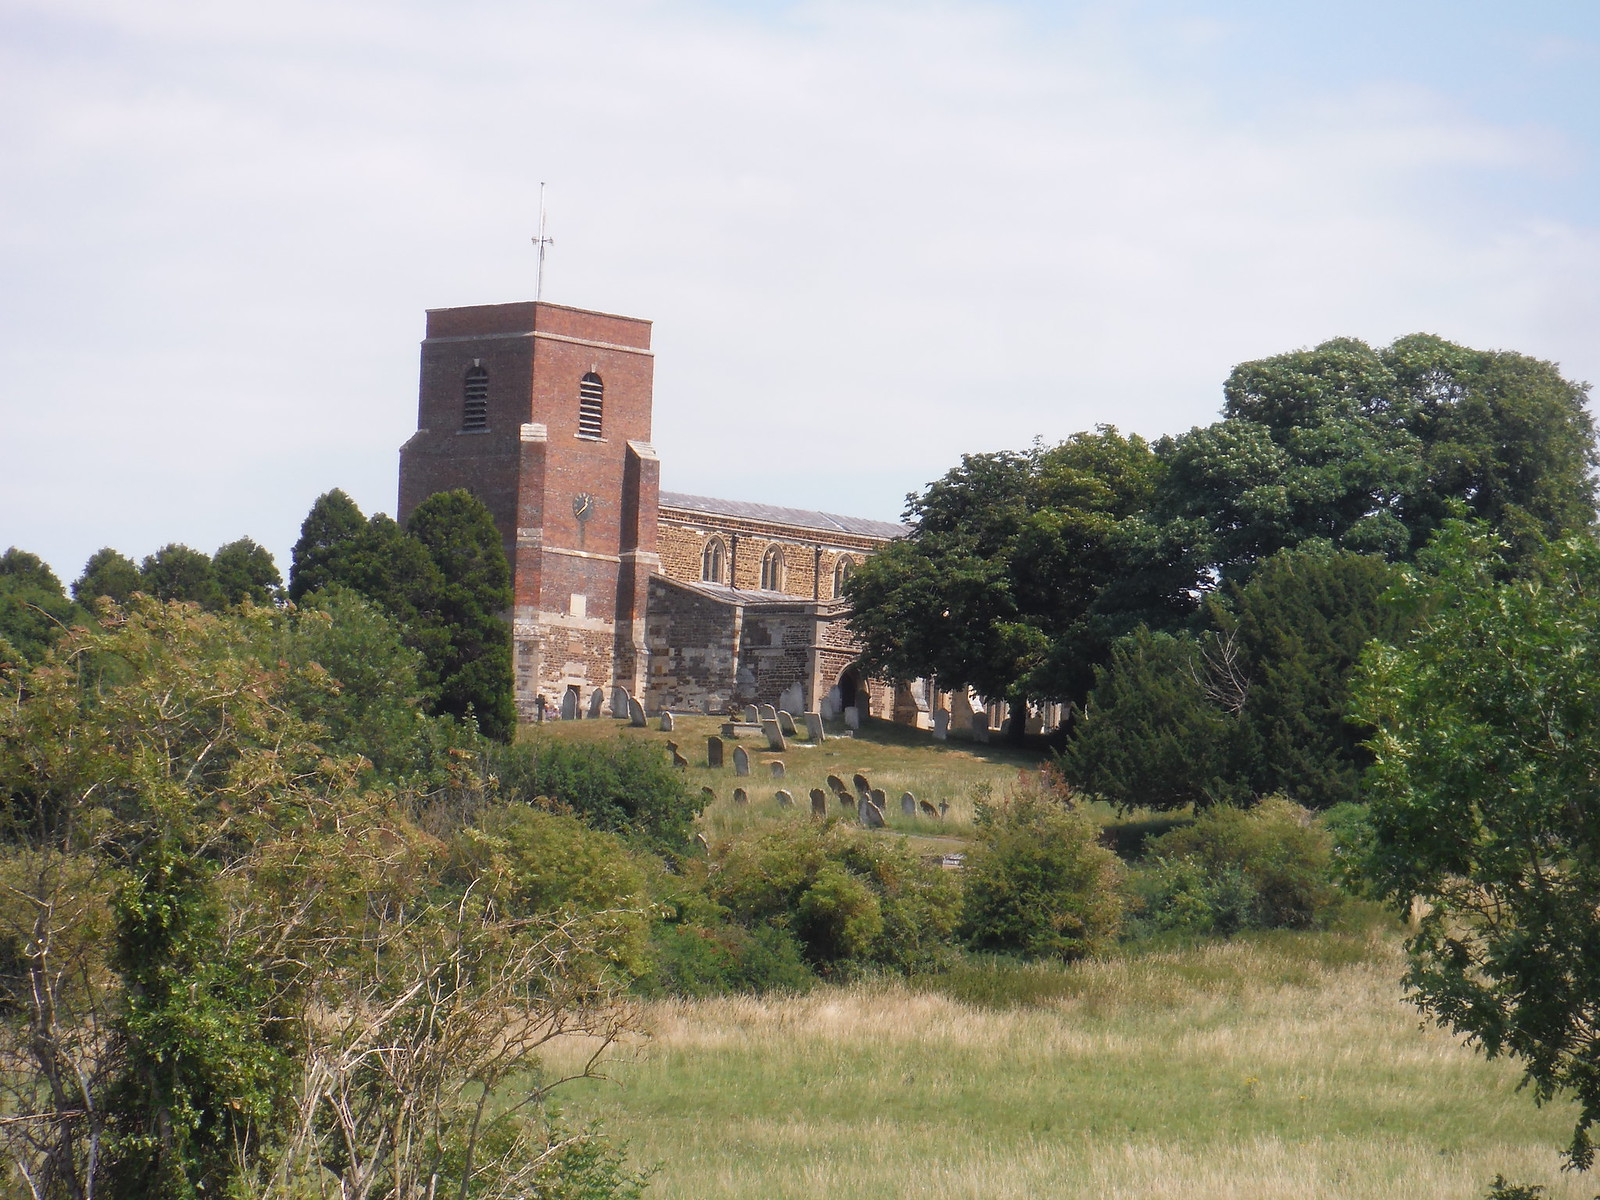 All Saints' Church, Shillington, from footpath SWC Walk 233 - Arlesey to Letchworth Garden City